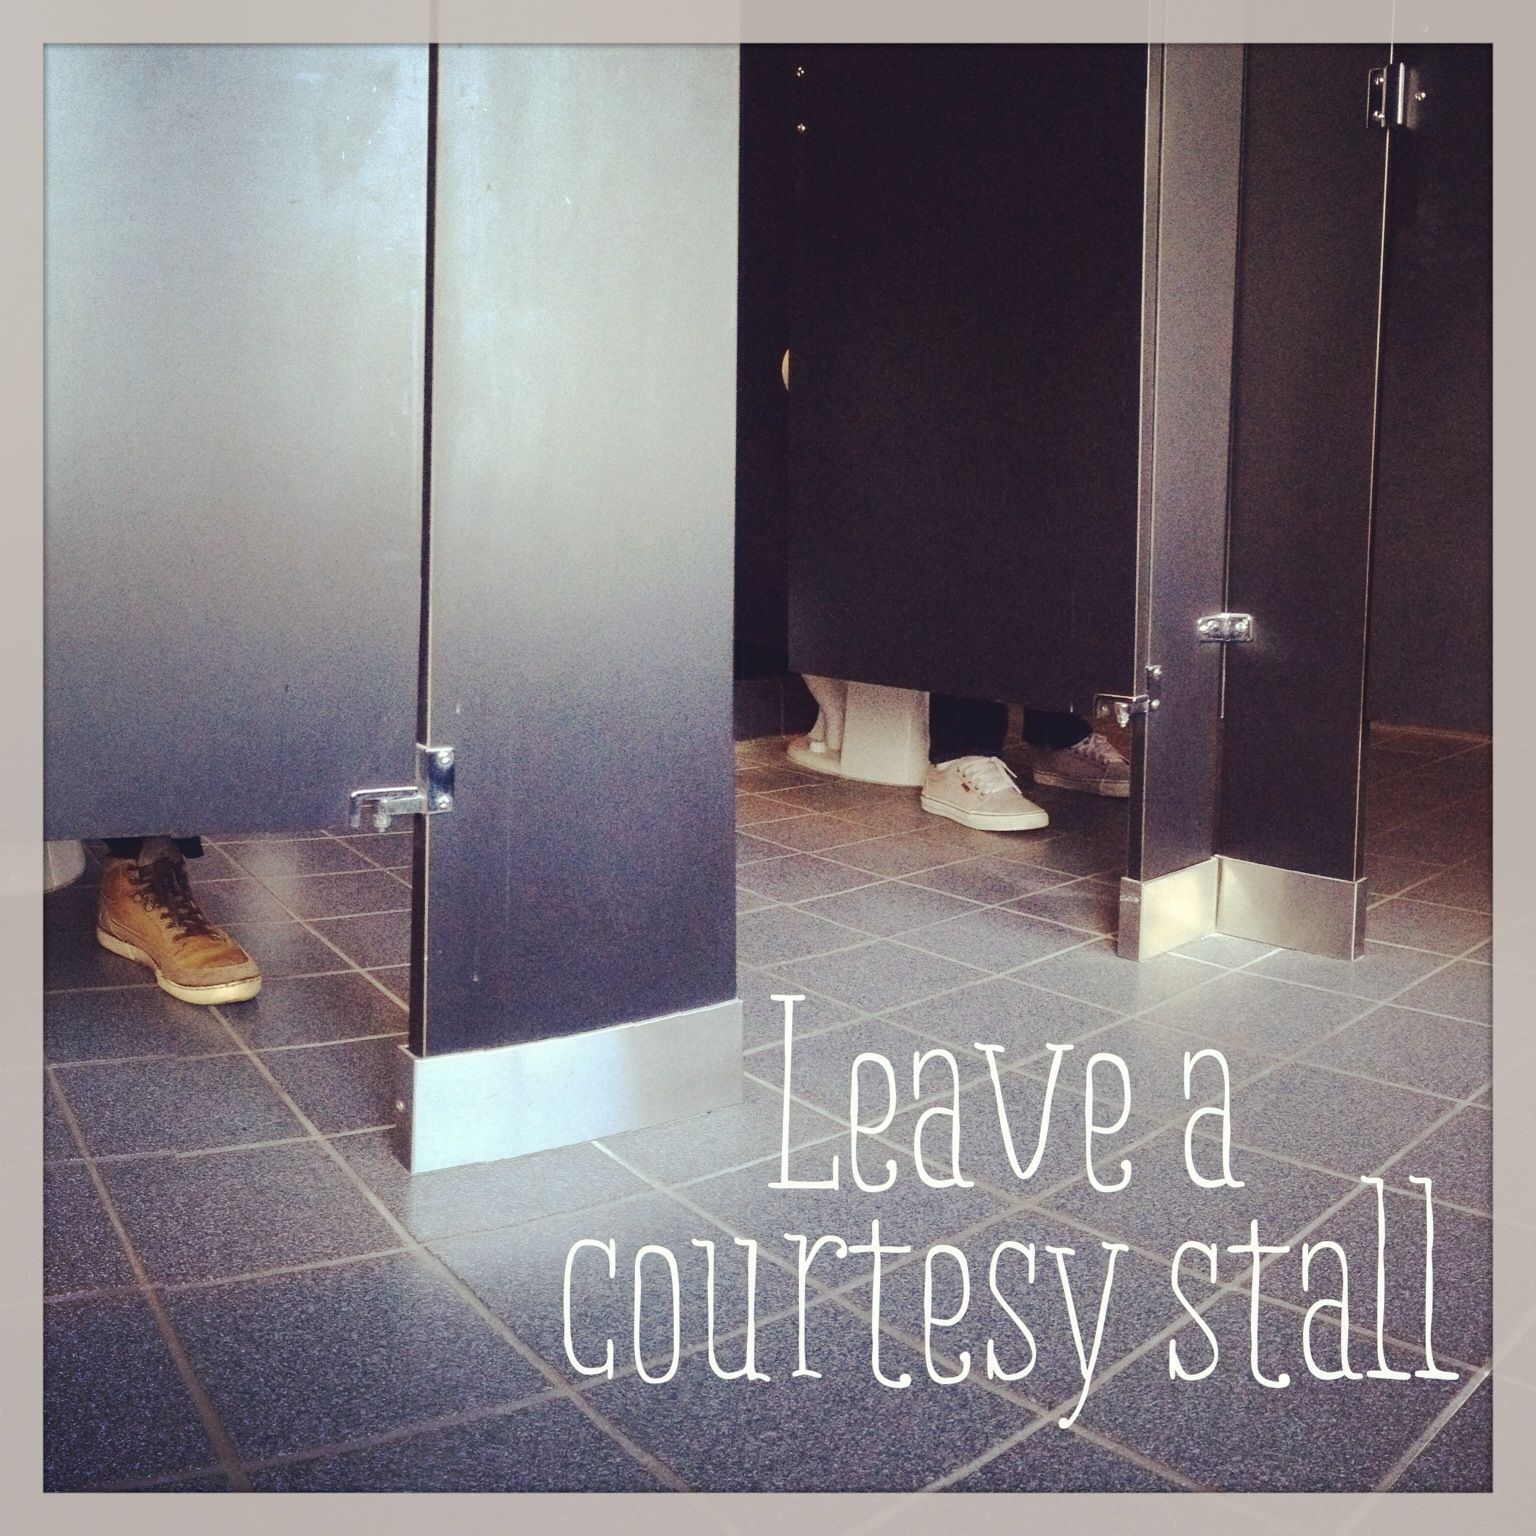 Bathroom Stall Encounters it's basic bathroom etiquette - leave an empty stall between you